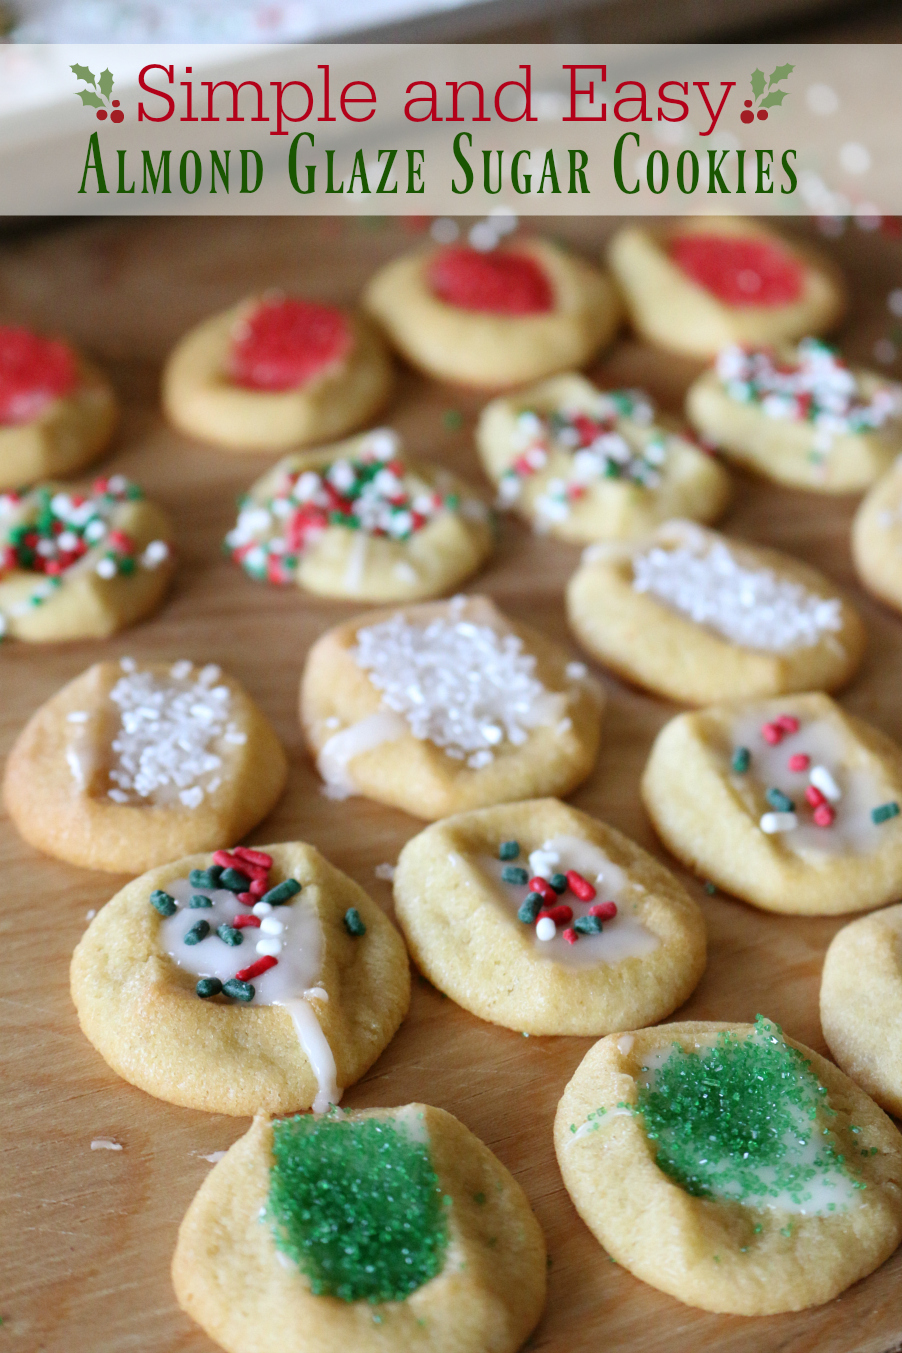 Cookie Emergency calls for Easy and Simple Almond Glaze Sugar Cookies with lots of sprinkles!